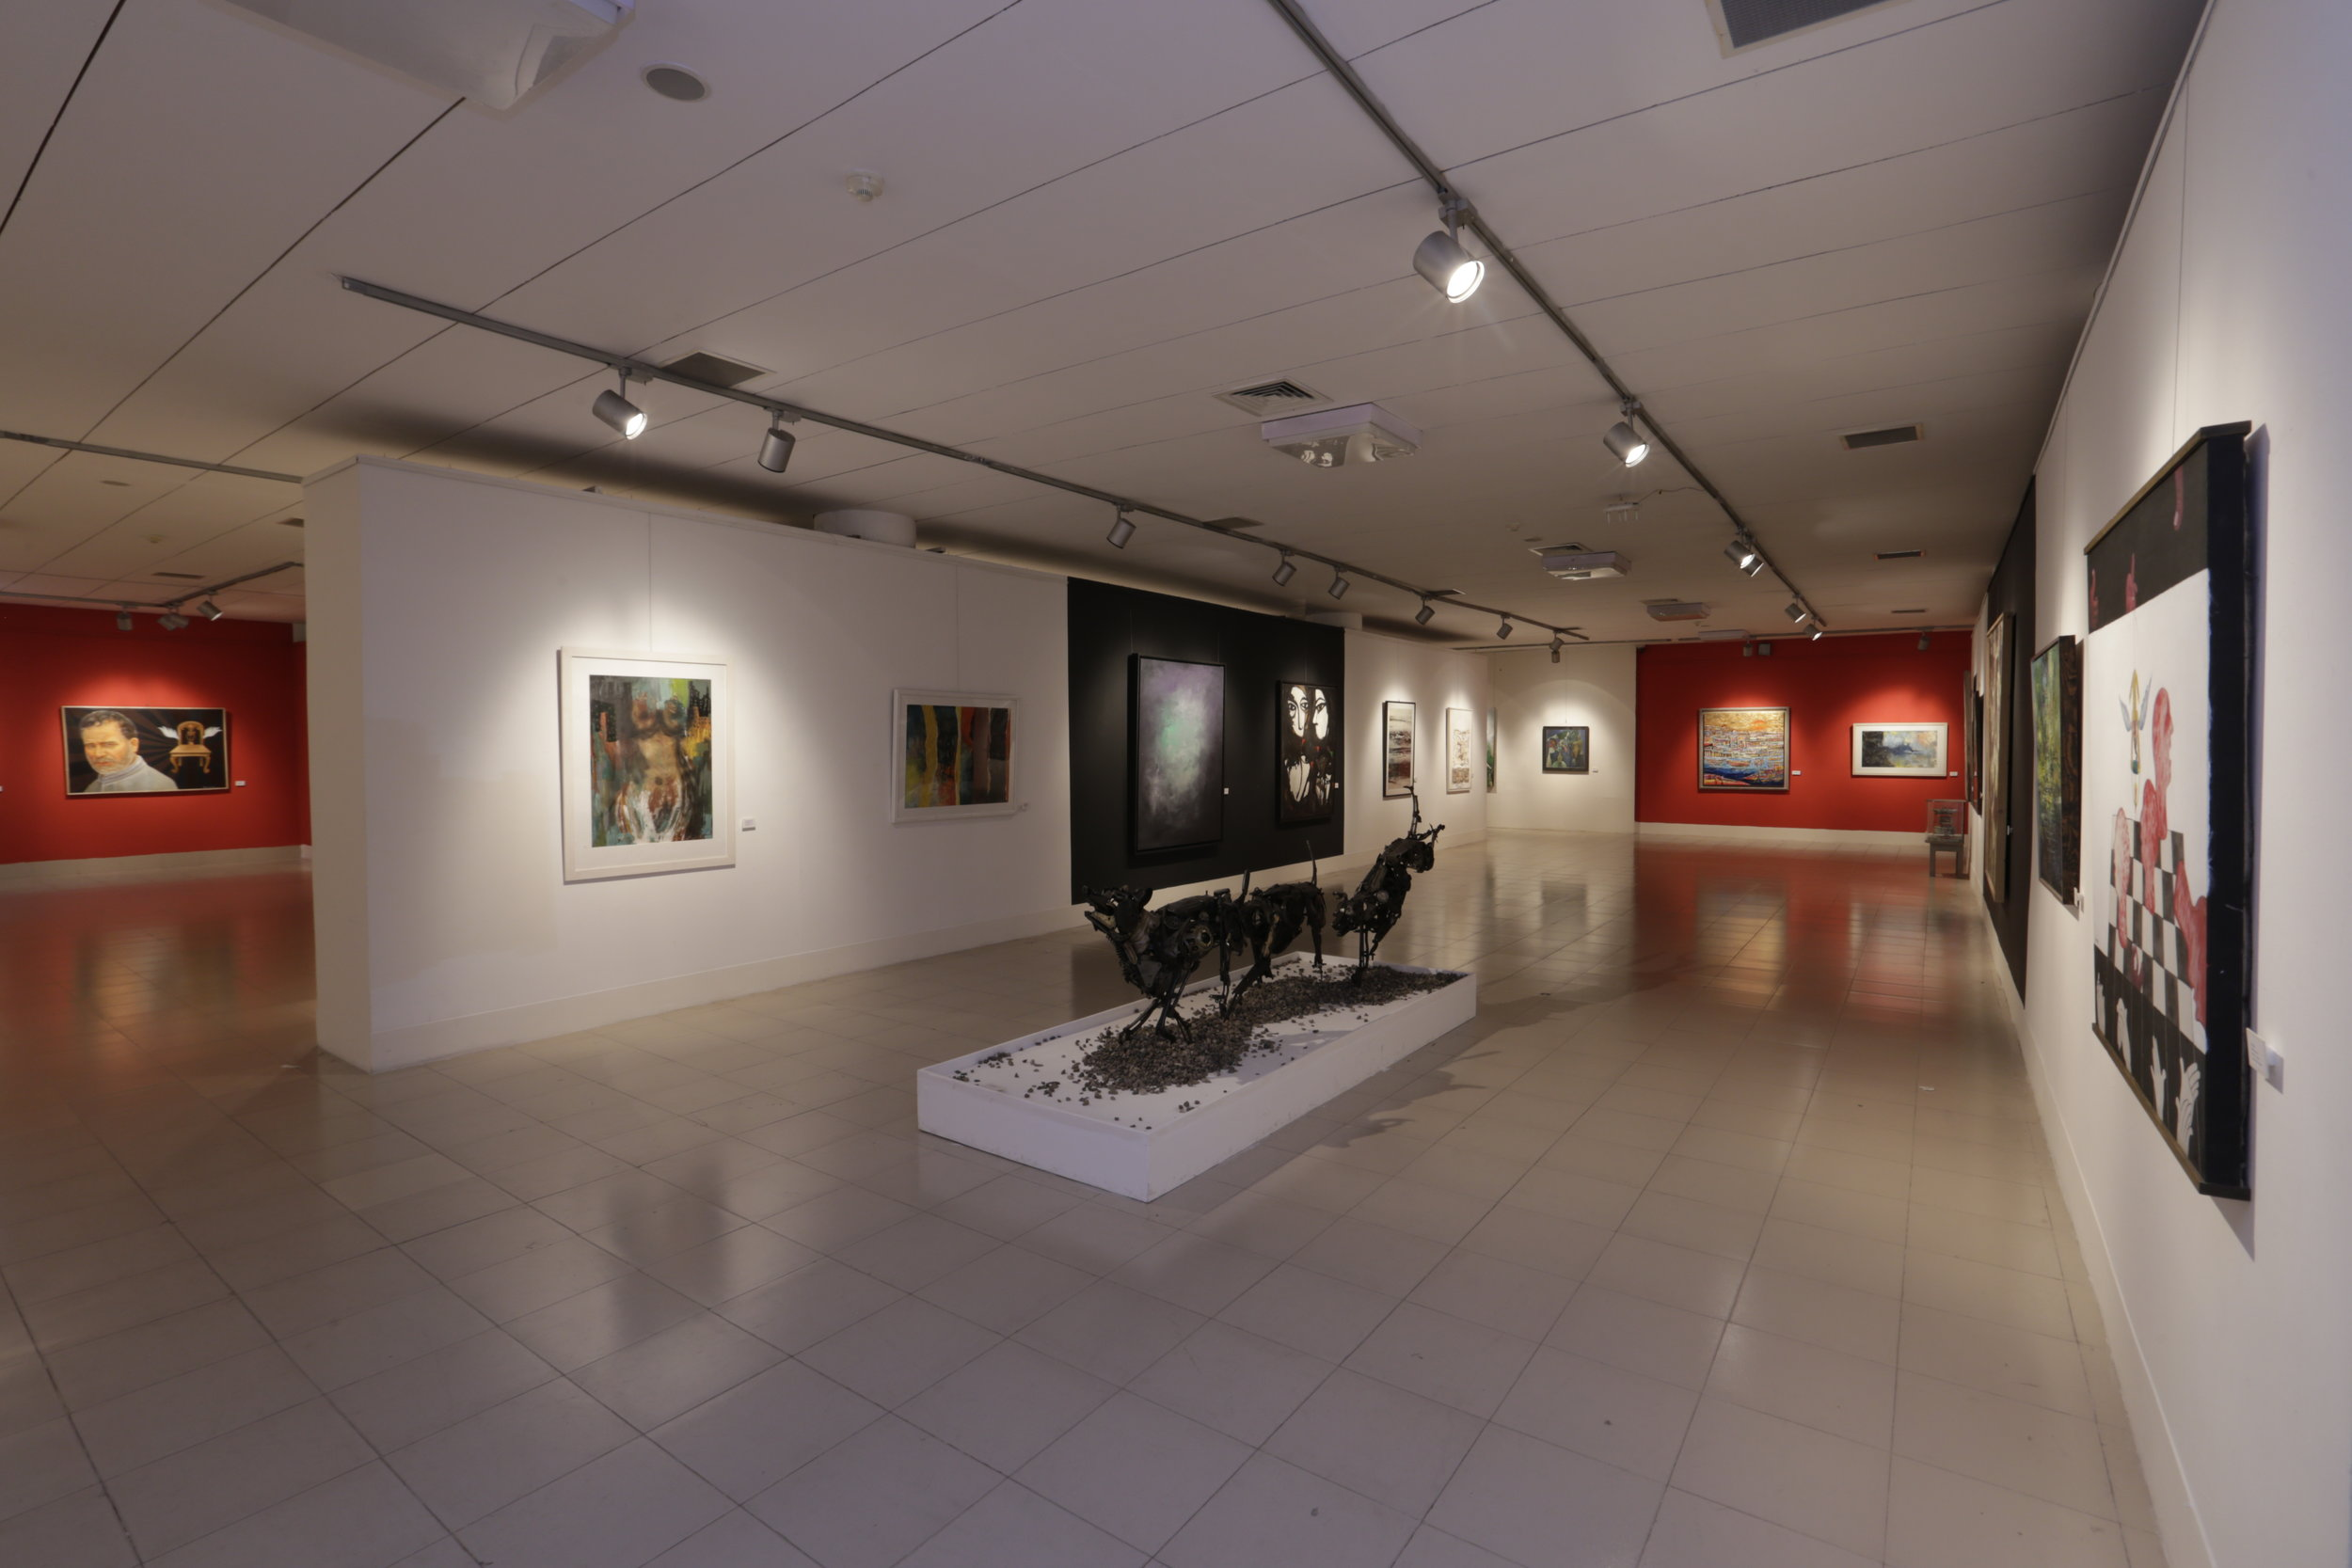 Installation image of the exhibition Expressions of Time